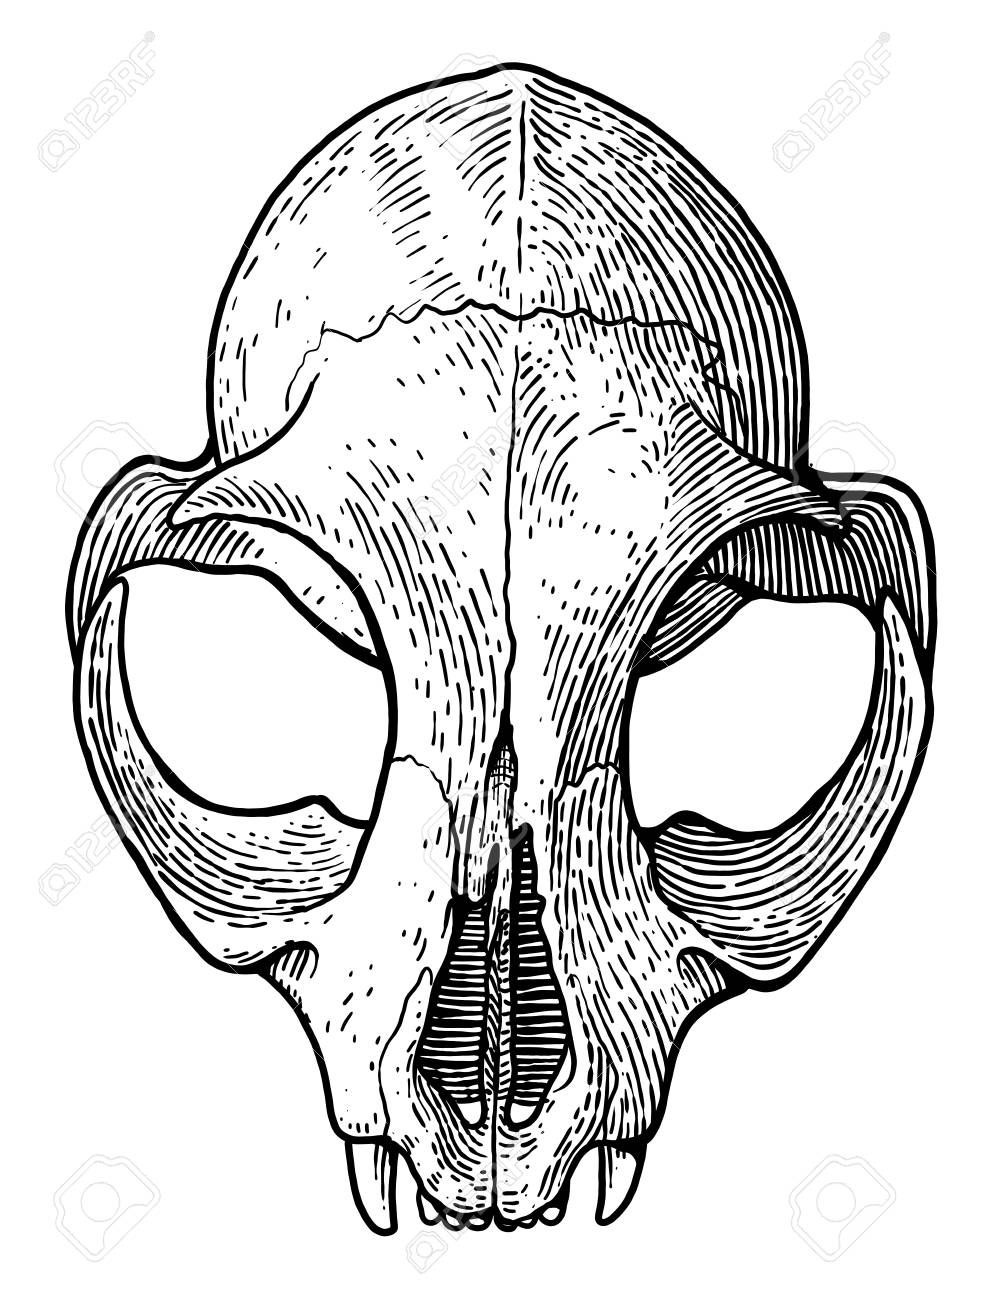 Skull Line Drawing Art